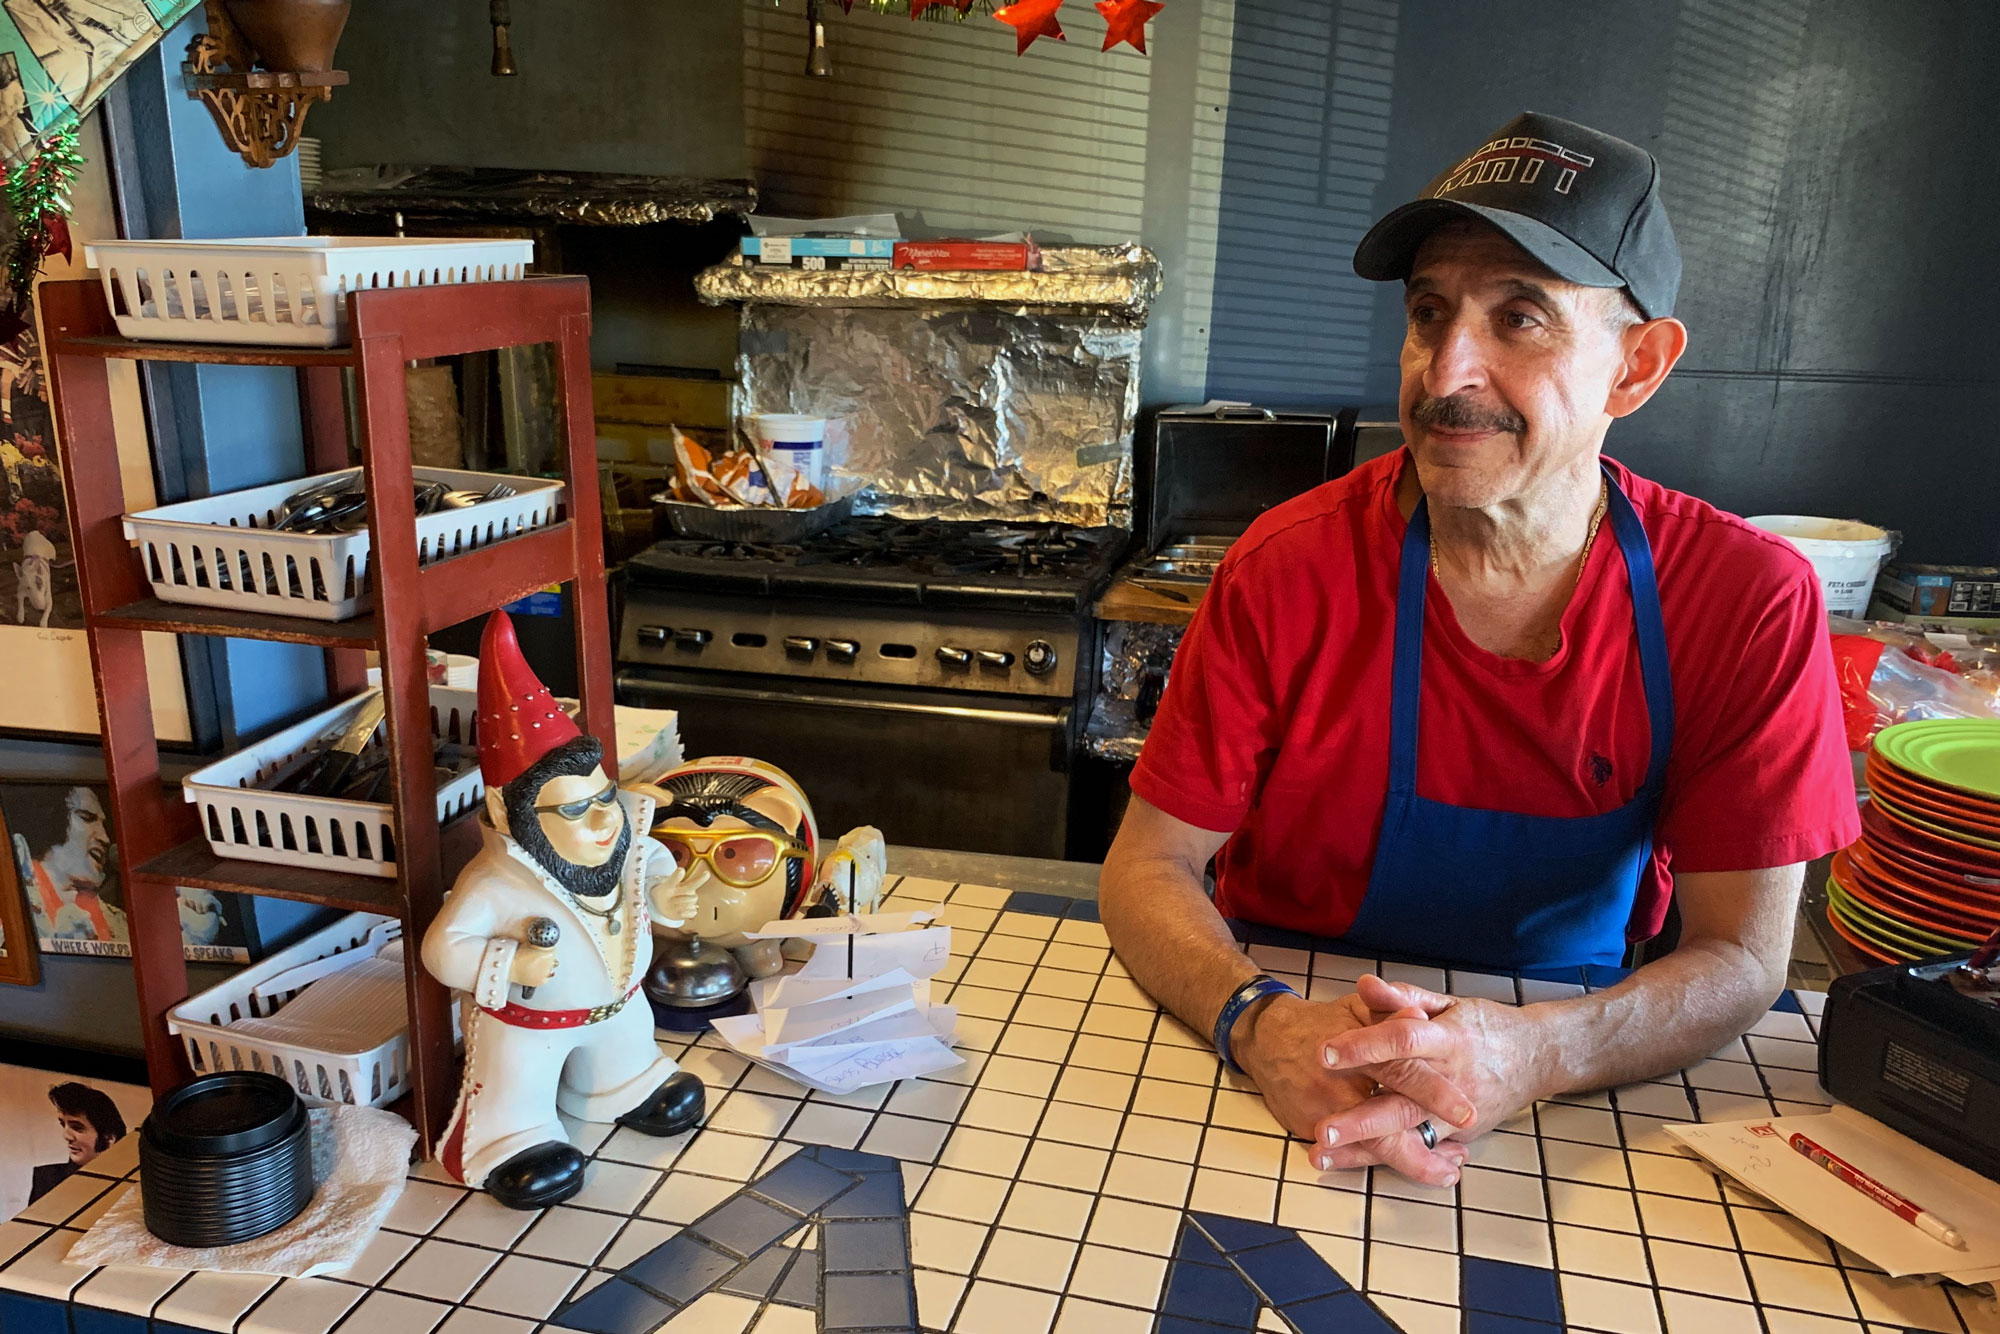 <p>Nick Andurlakisat the counter of his Elvis-themed restaurant, Nick's Cafe, located near a hub offederal agency in Lakewood. Andurlakissaid the cafe has lost 20 or 25 percent of its business during the shutdown.</p>